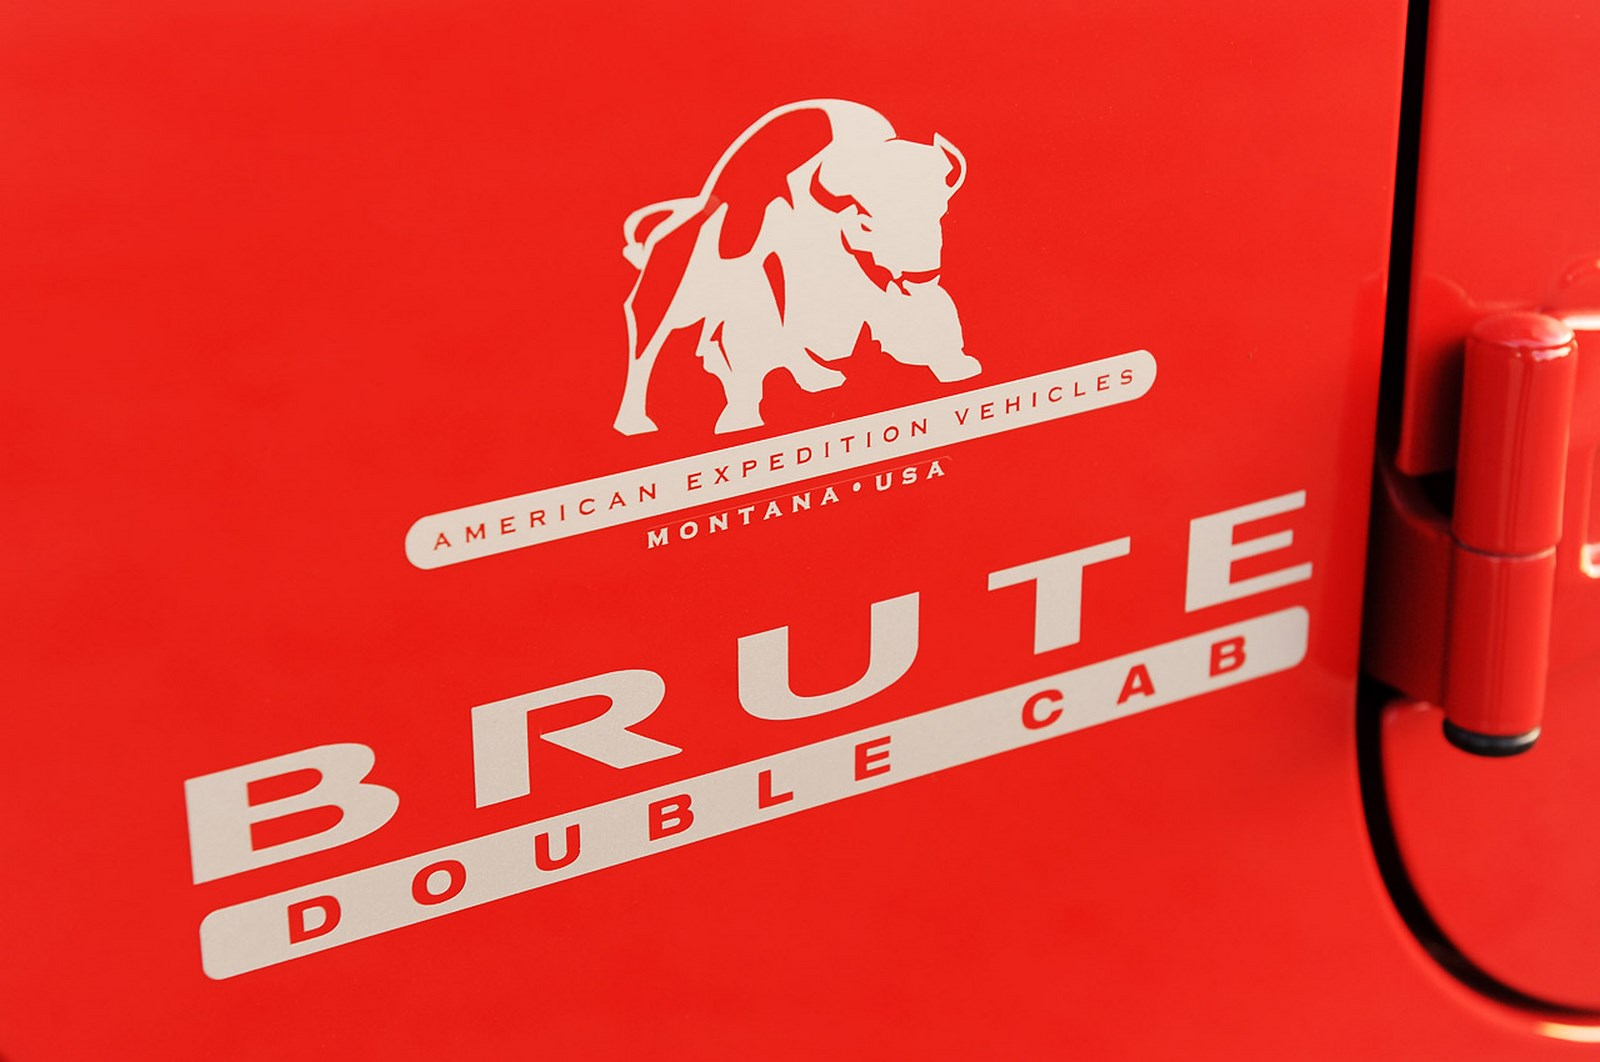 25-aev-brute-double-cab-fd